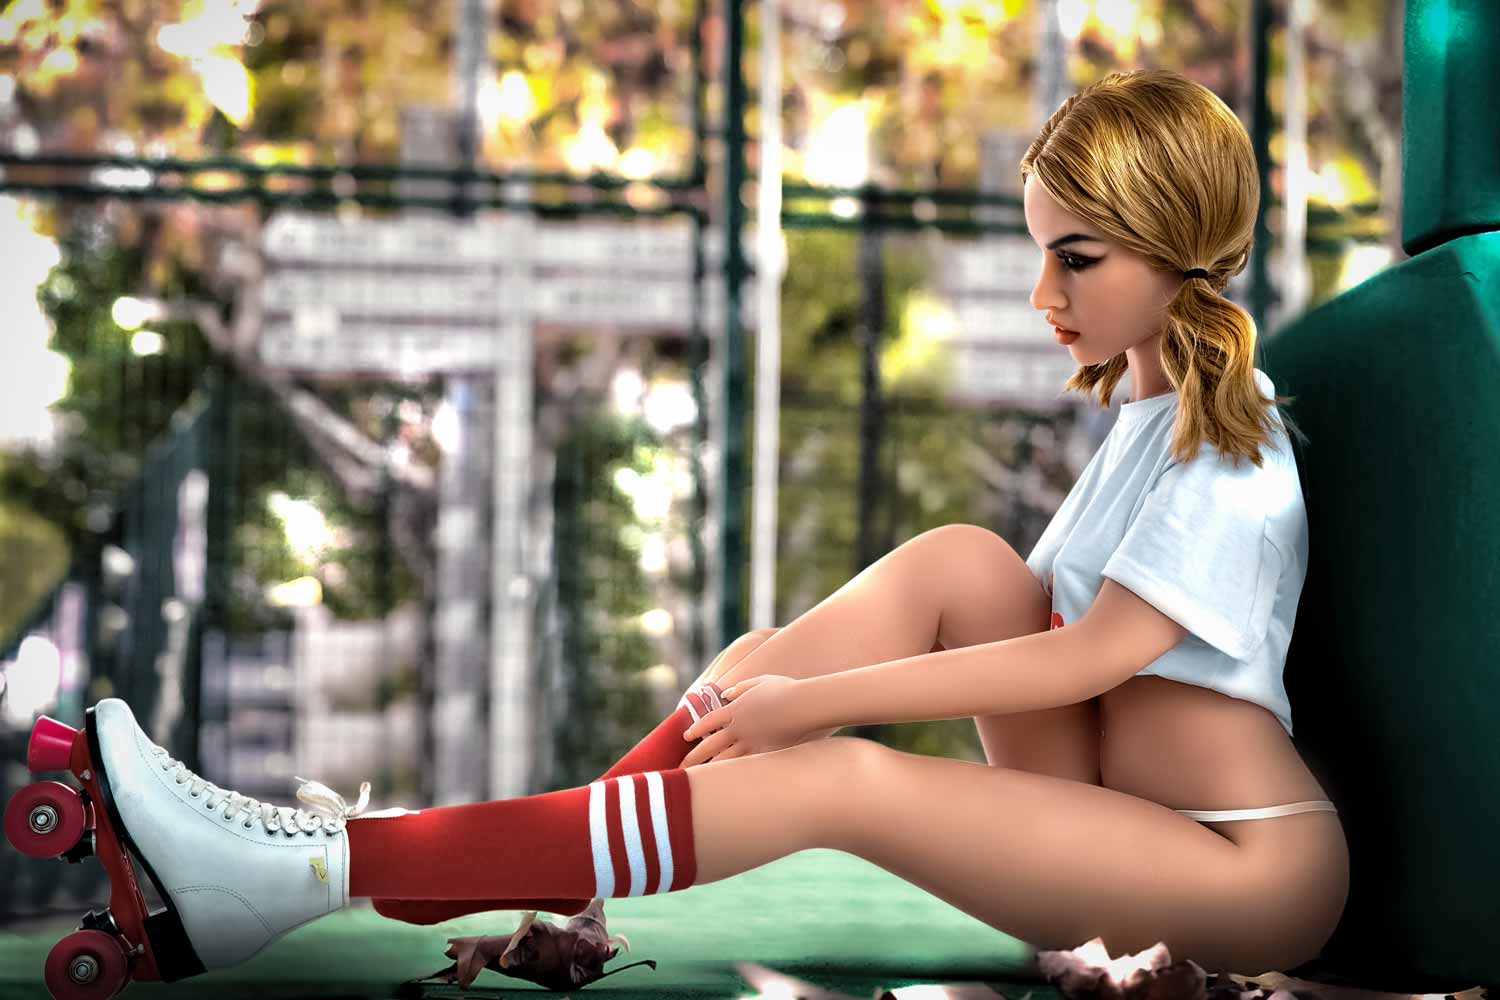 Sex doll sitting on the playground taking off socks